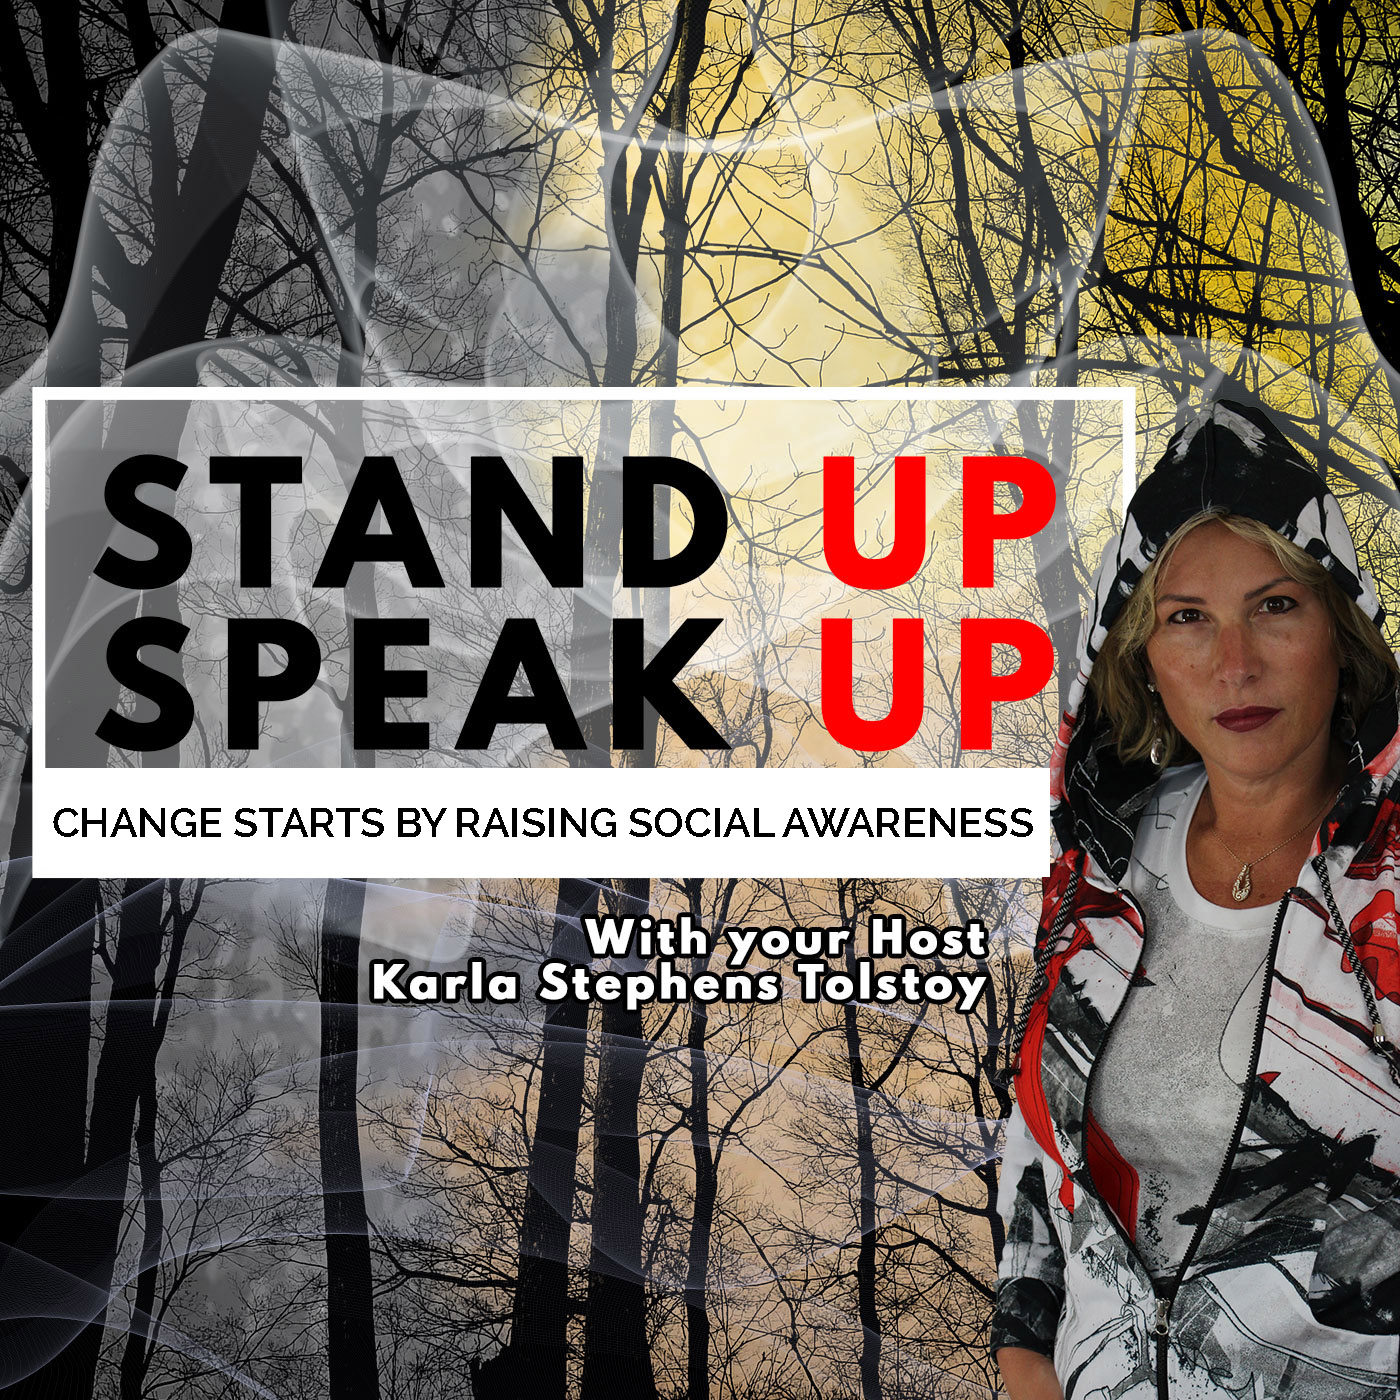 Stand Up Speak Up by Tokii